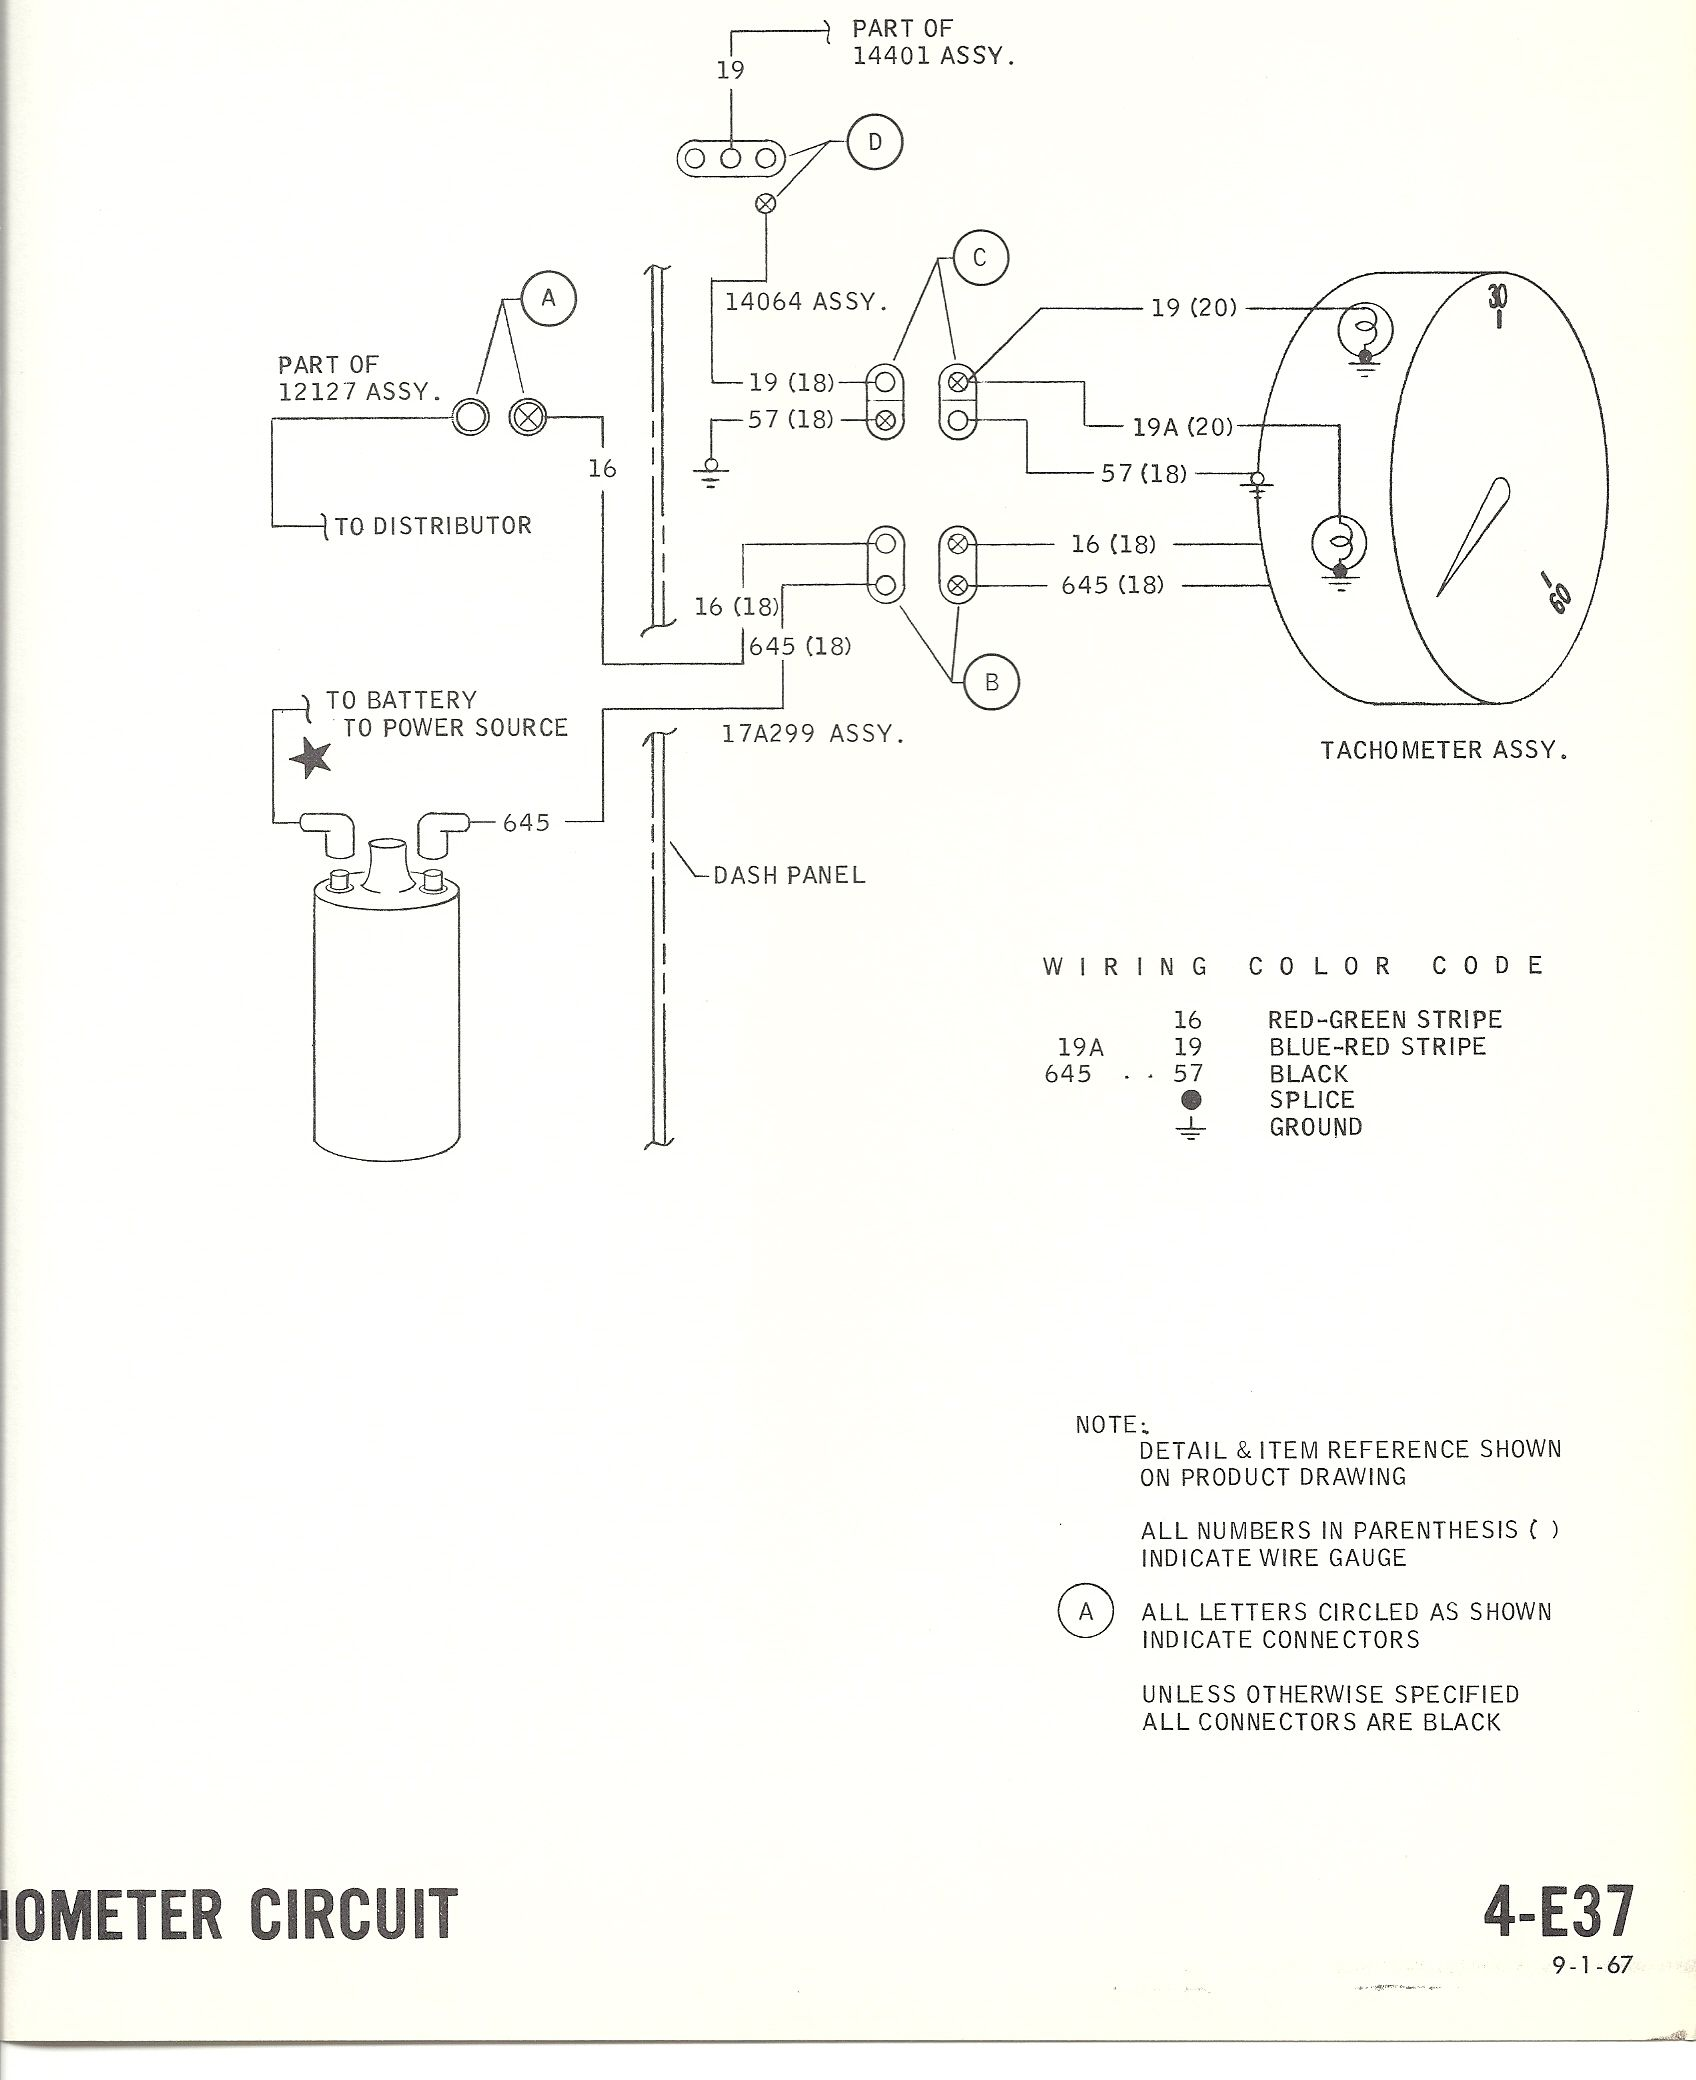 hight resolution of 1975 911 tach wiring diagram wiring diagram paper 1975 911 tach wiring diagram